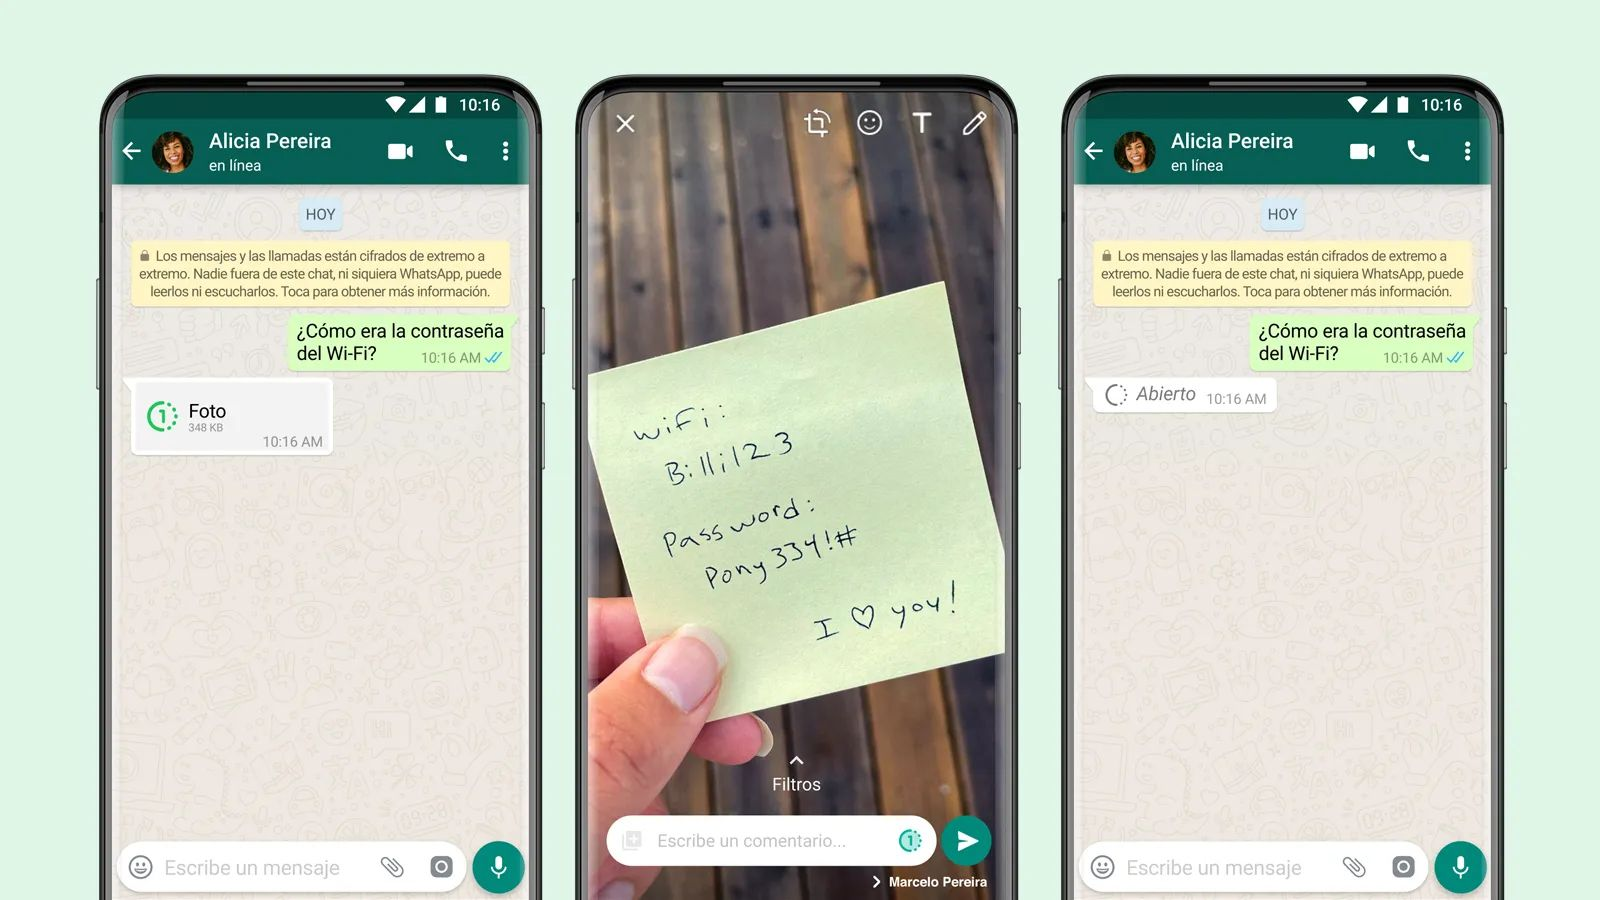 How to send temporary photos and video on WhatsApp?